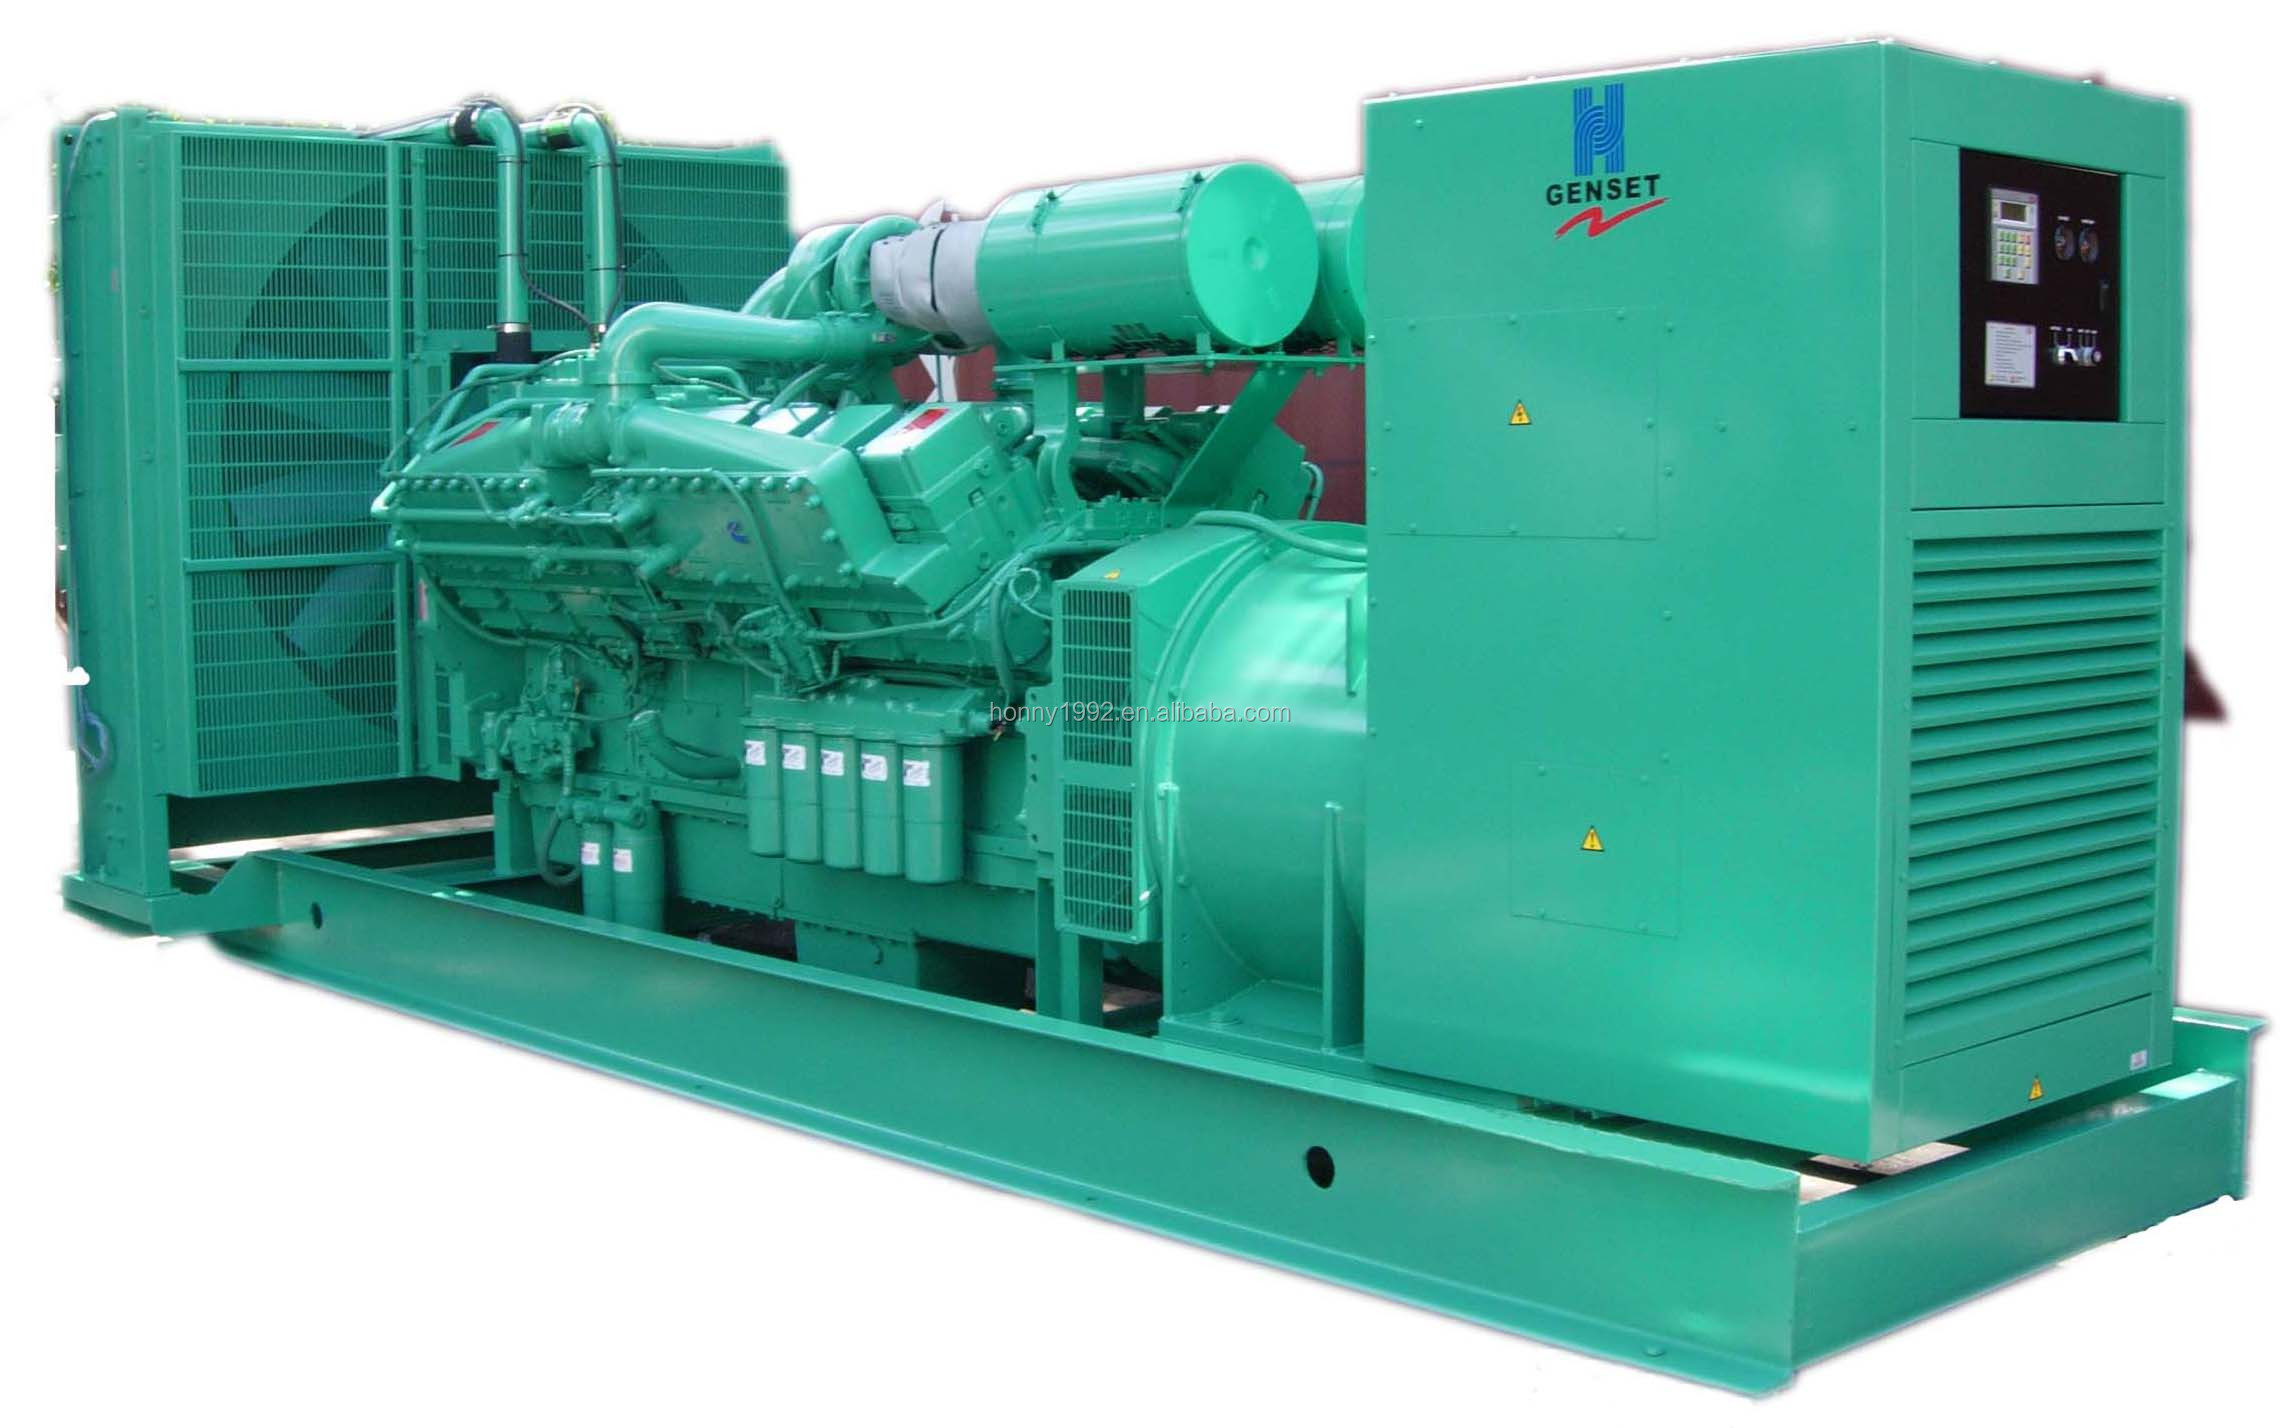 China Imported Diesel Generator China Imported Diesel Generator